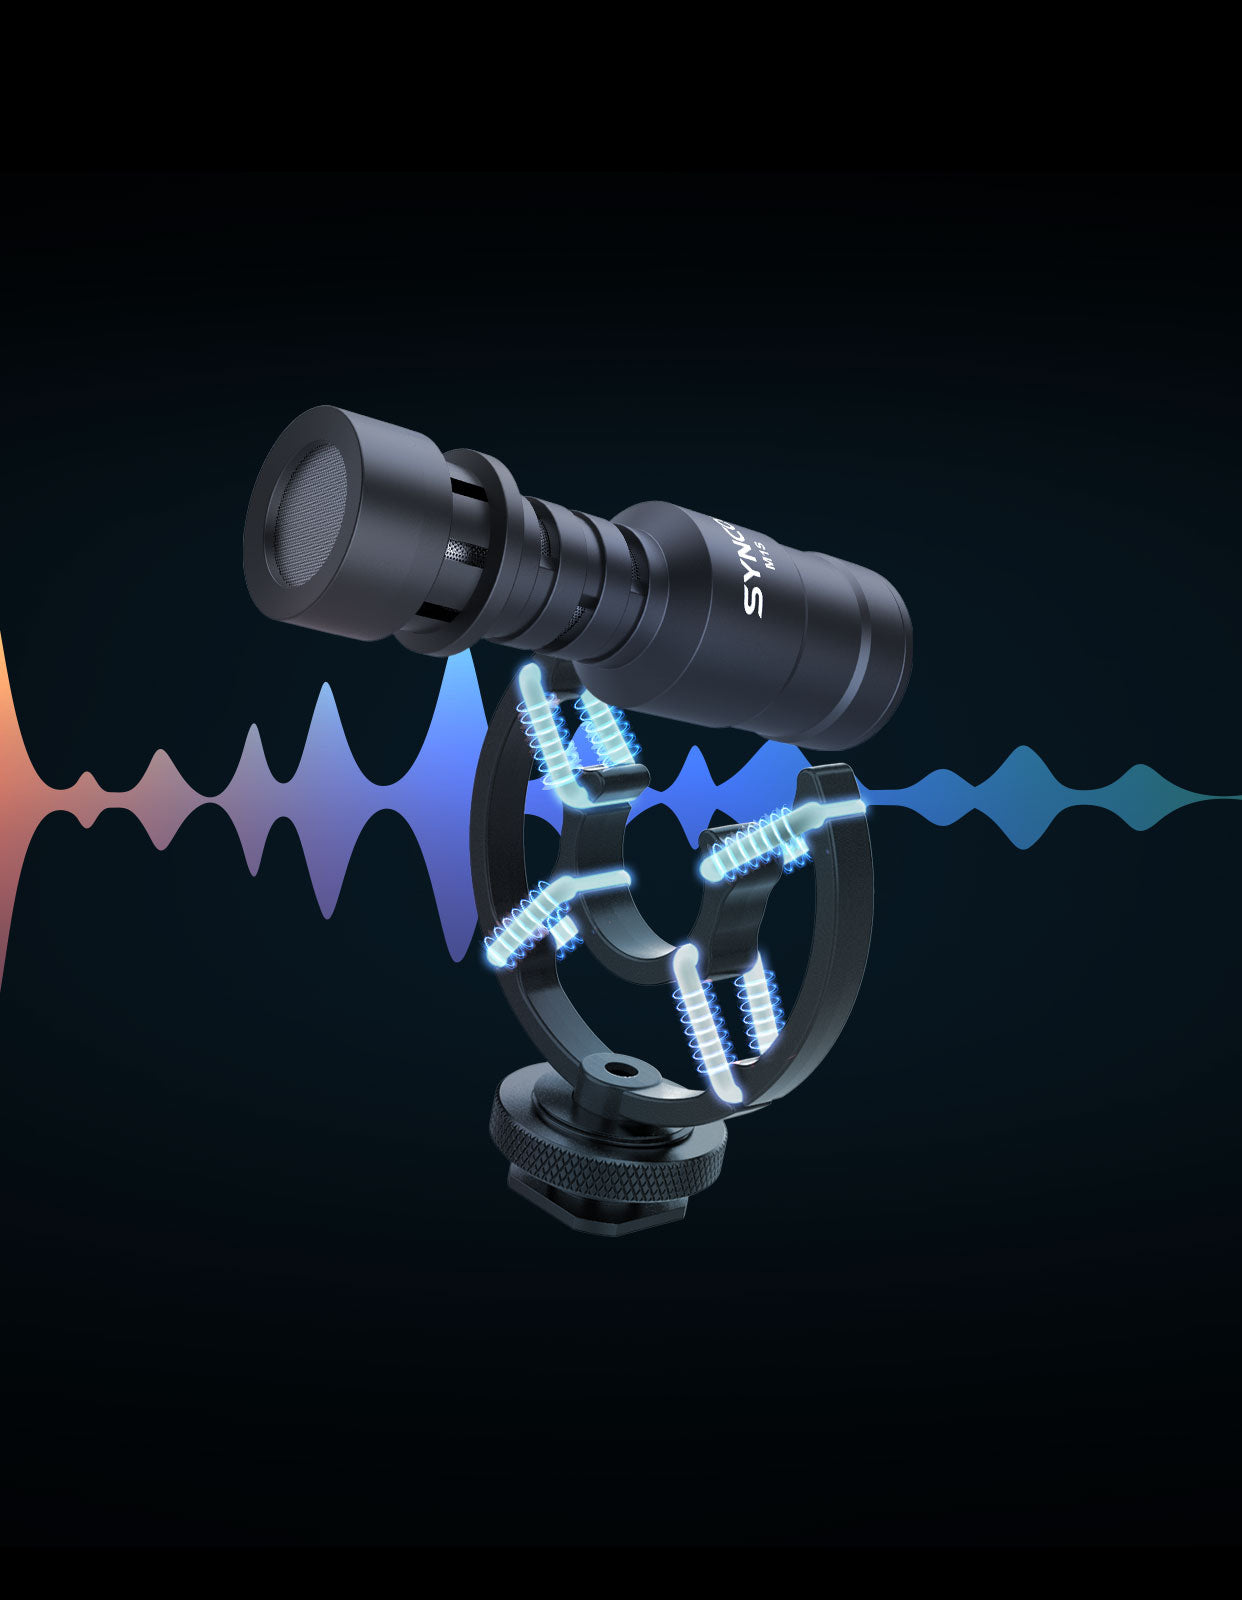 SYNCO Mic-M1S Free Action, Smooth Recording